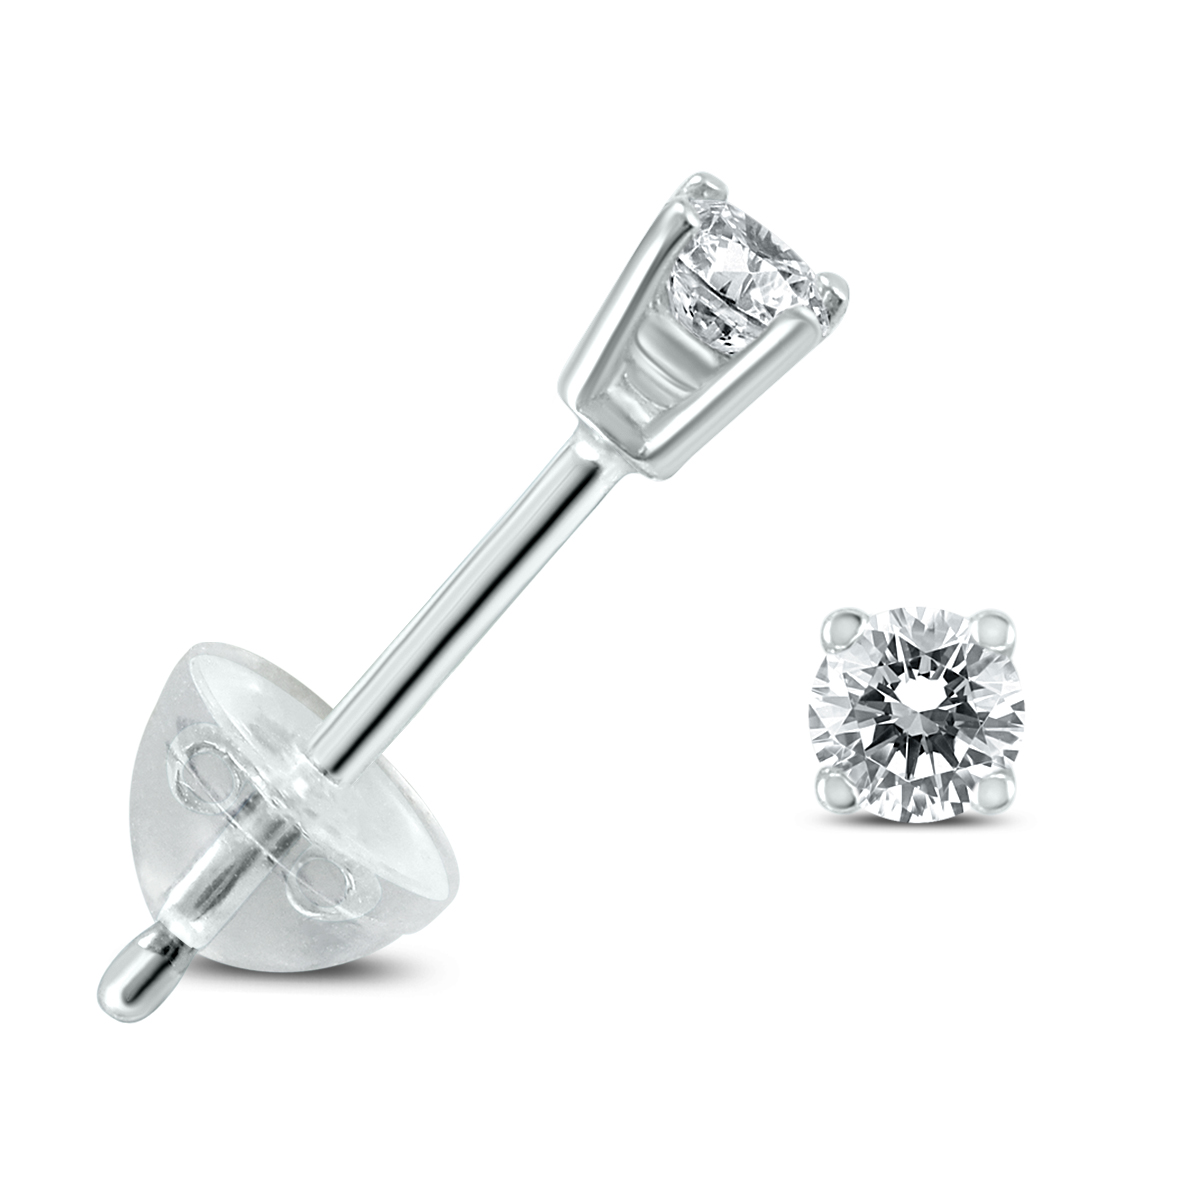 .06CTW Round Diamond Solitaire Stud Earrings In 14k White Gold with Silicon Backs